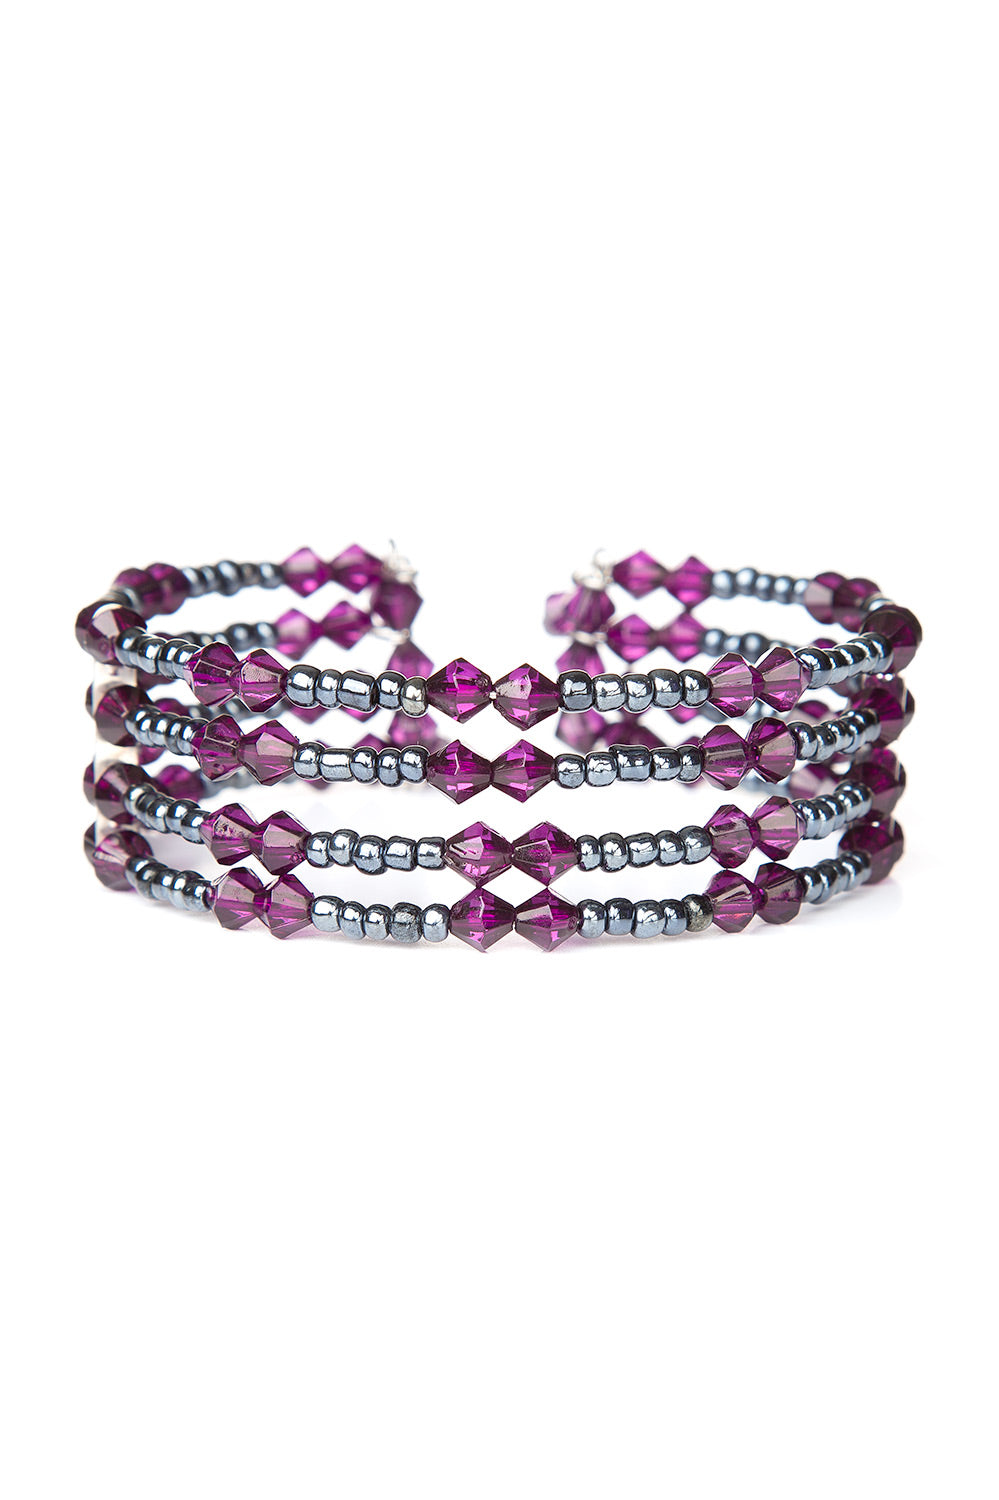 Type 2 Cosmic Bracelet in Purple